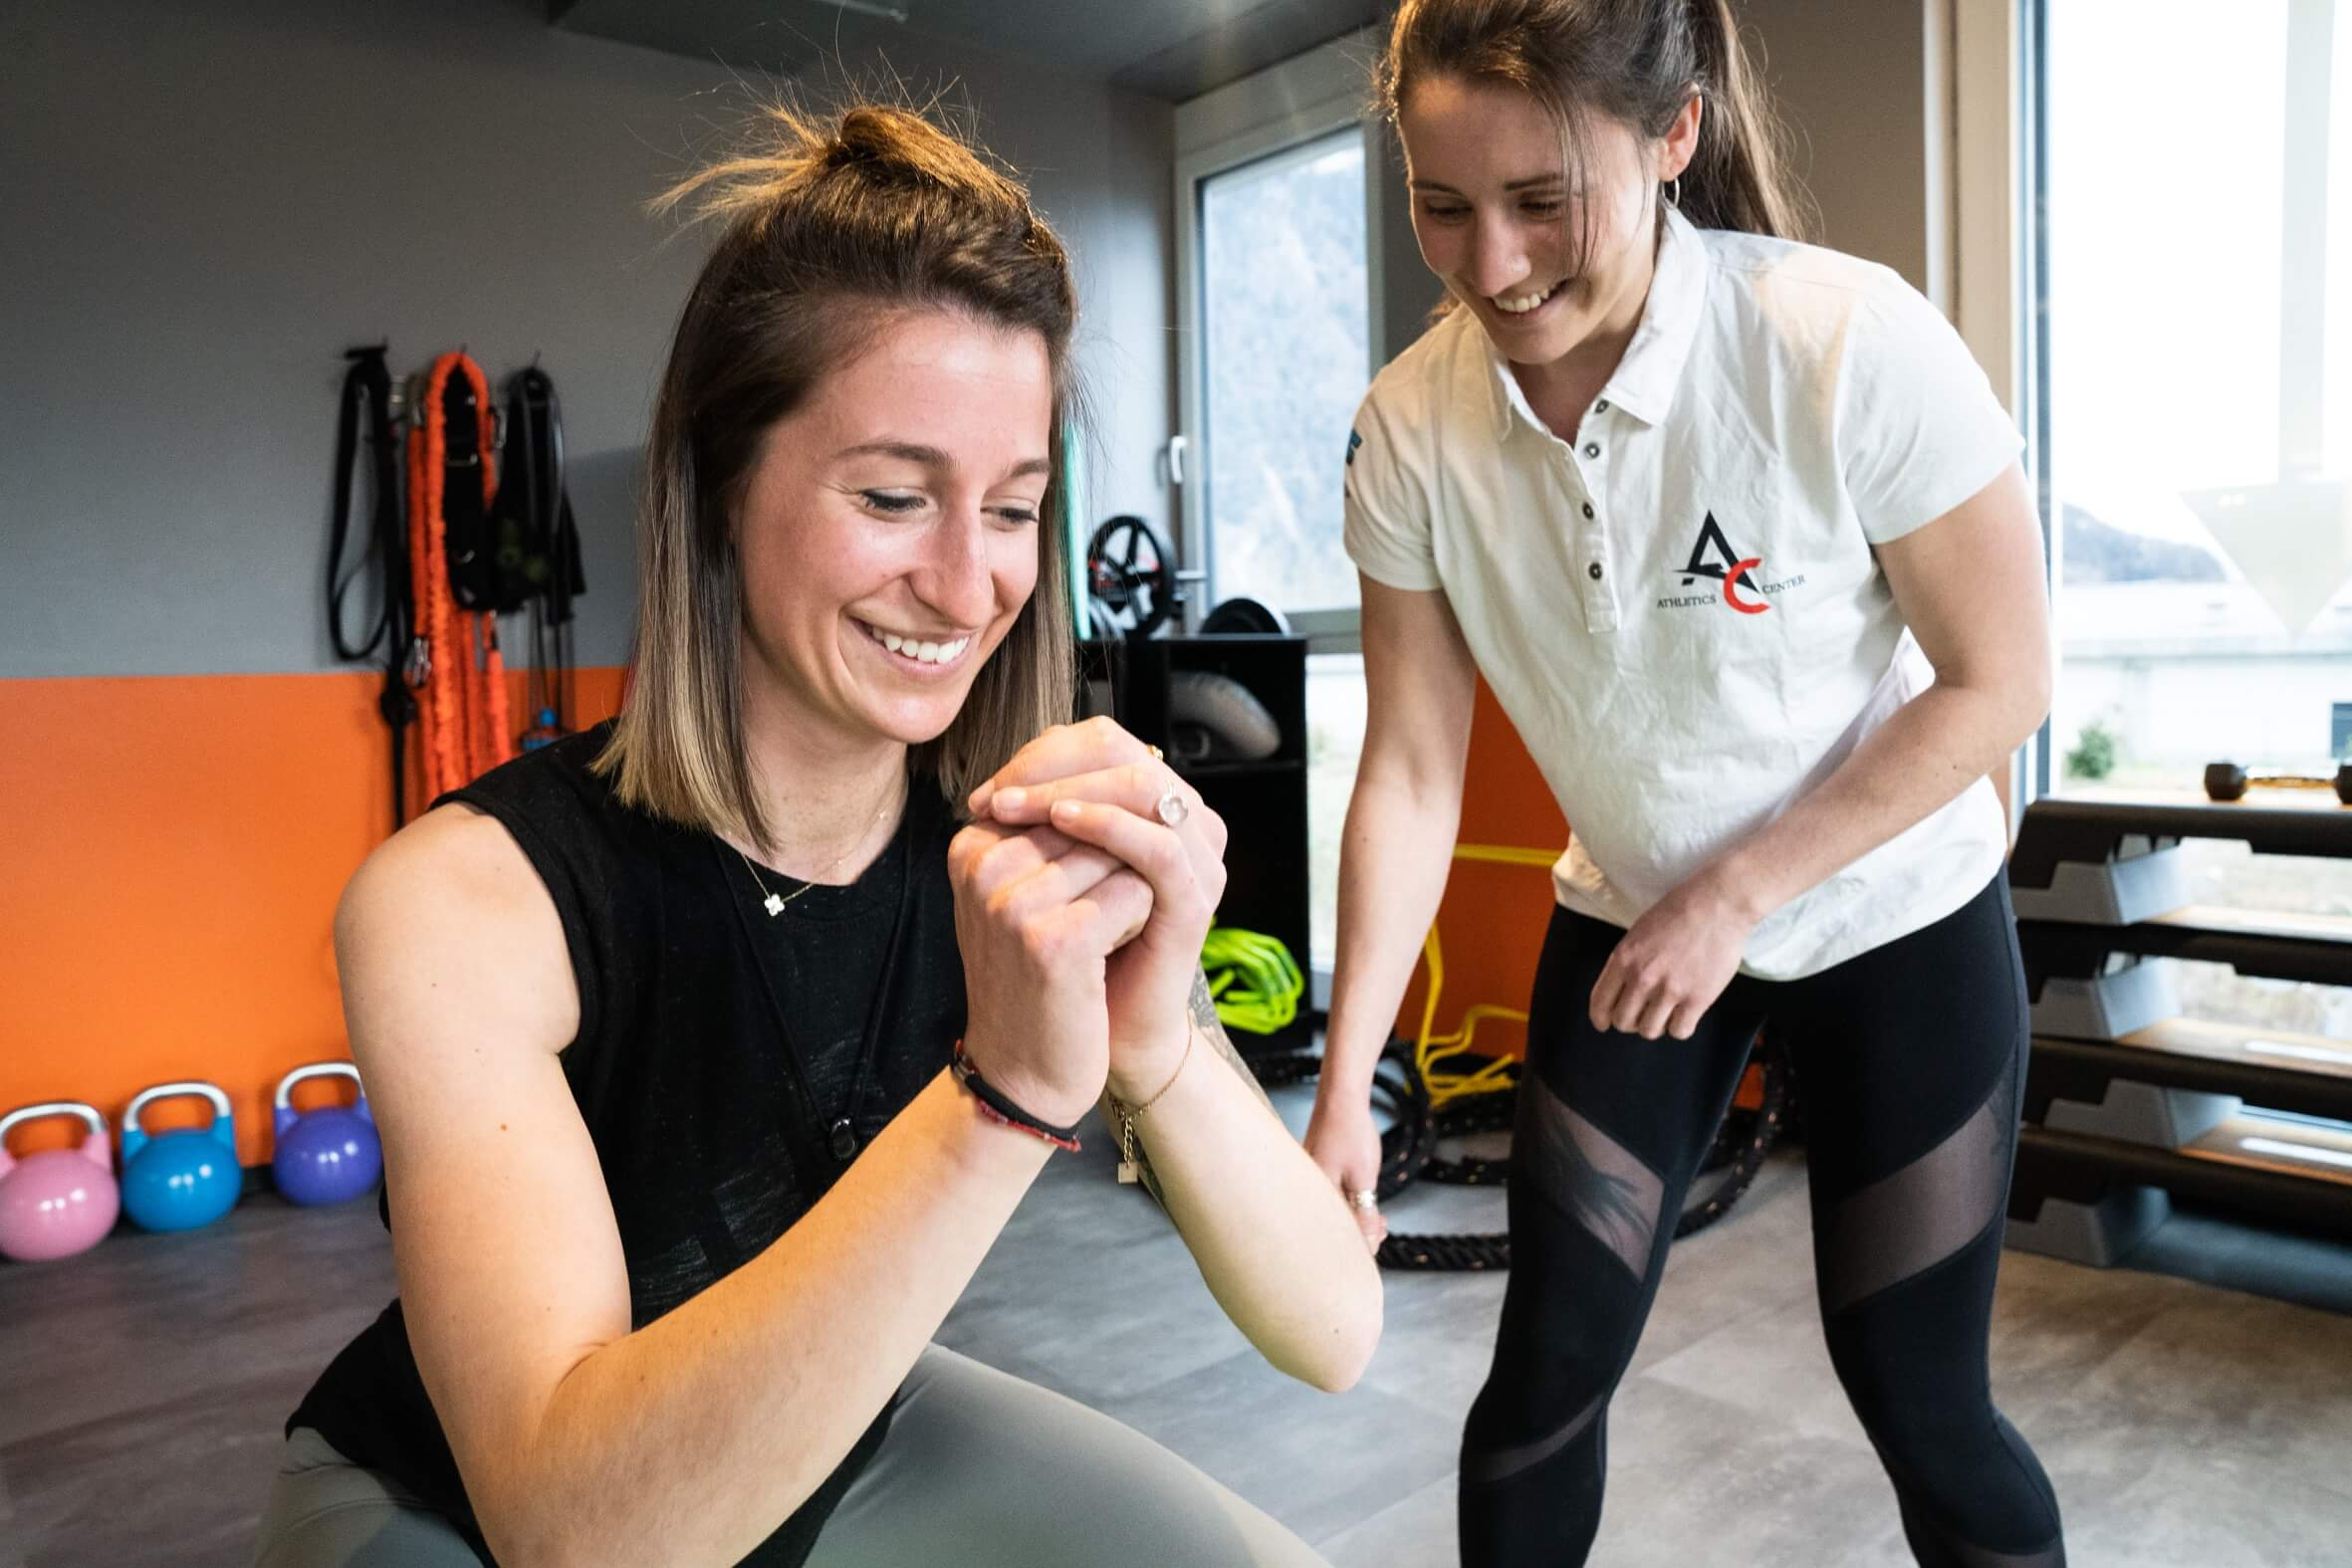 cours-collectifs-fitness-noville-vaud-8